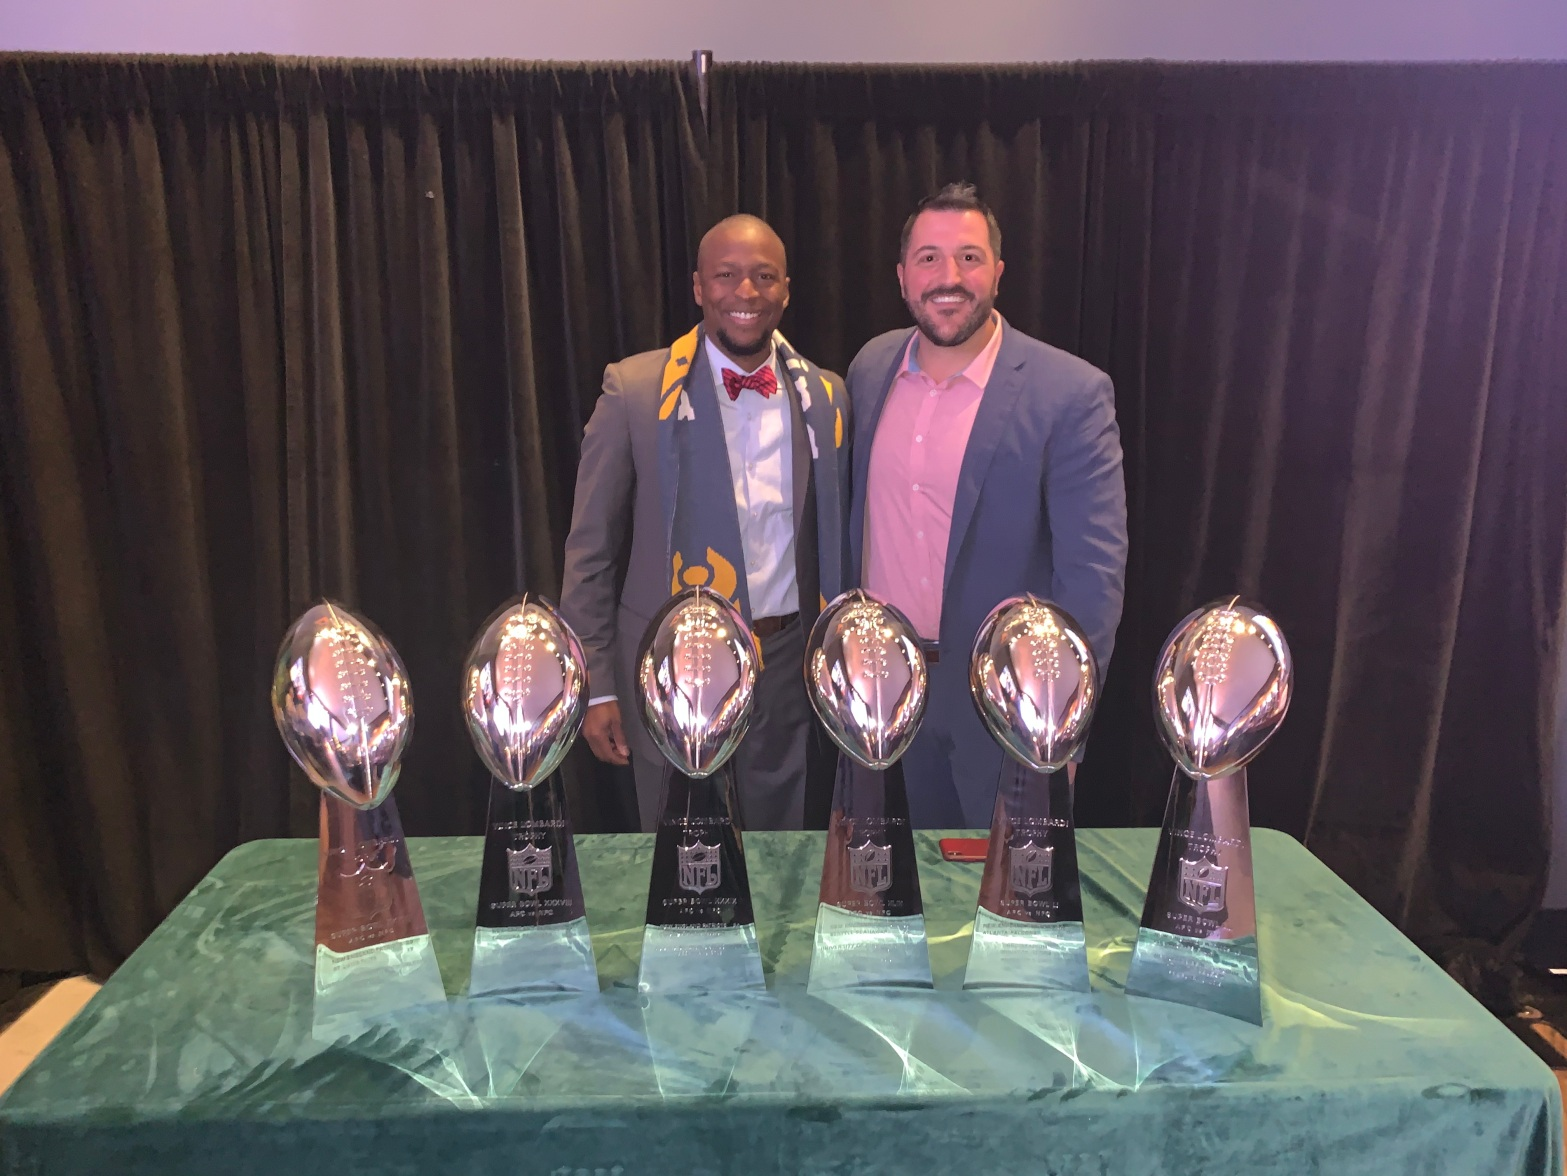 LeRoy Watkins with the Patriots super bowl trophies